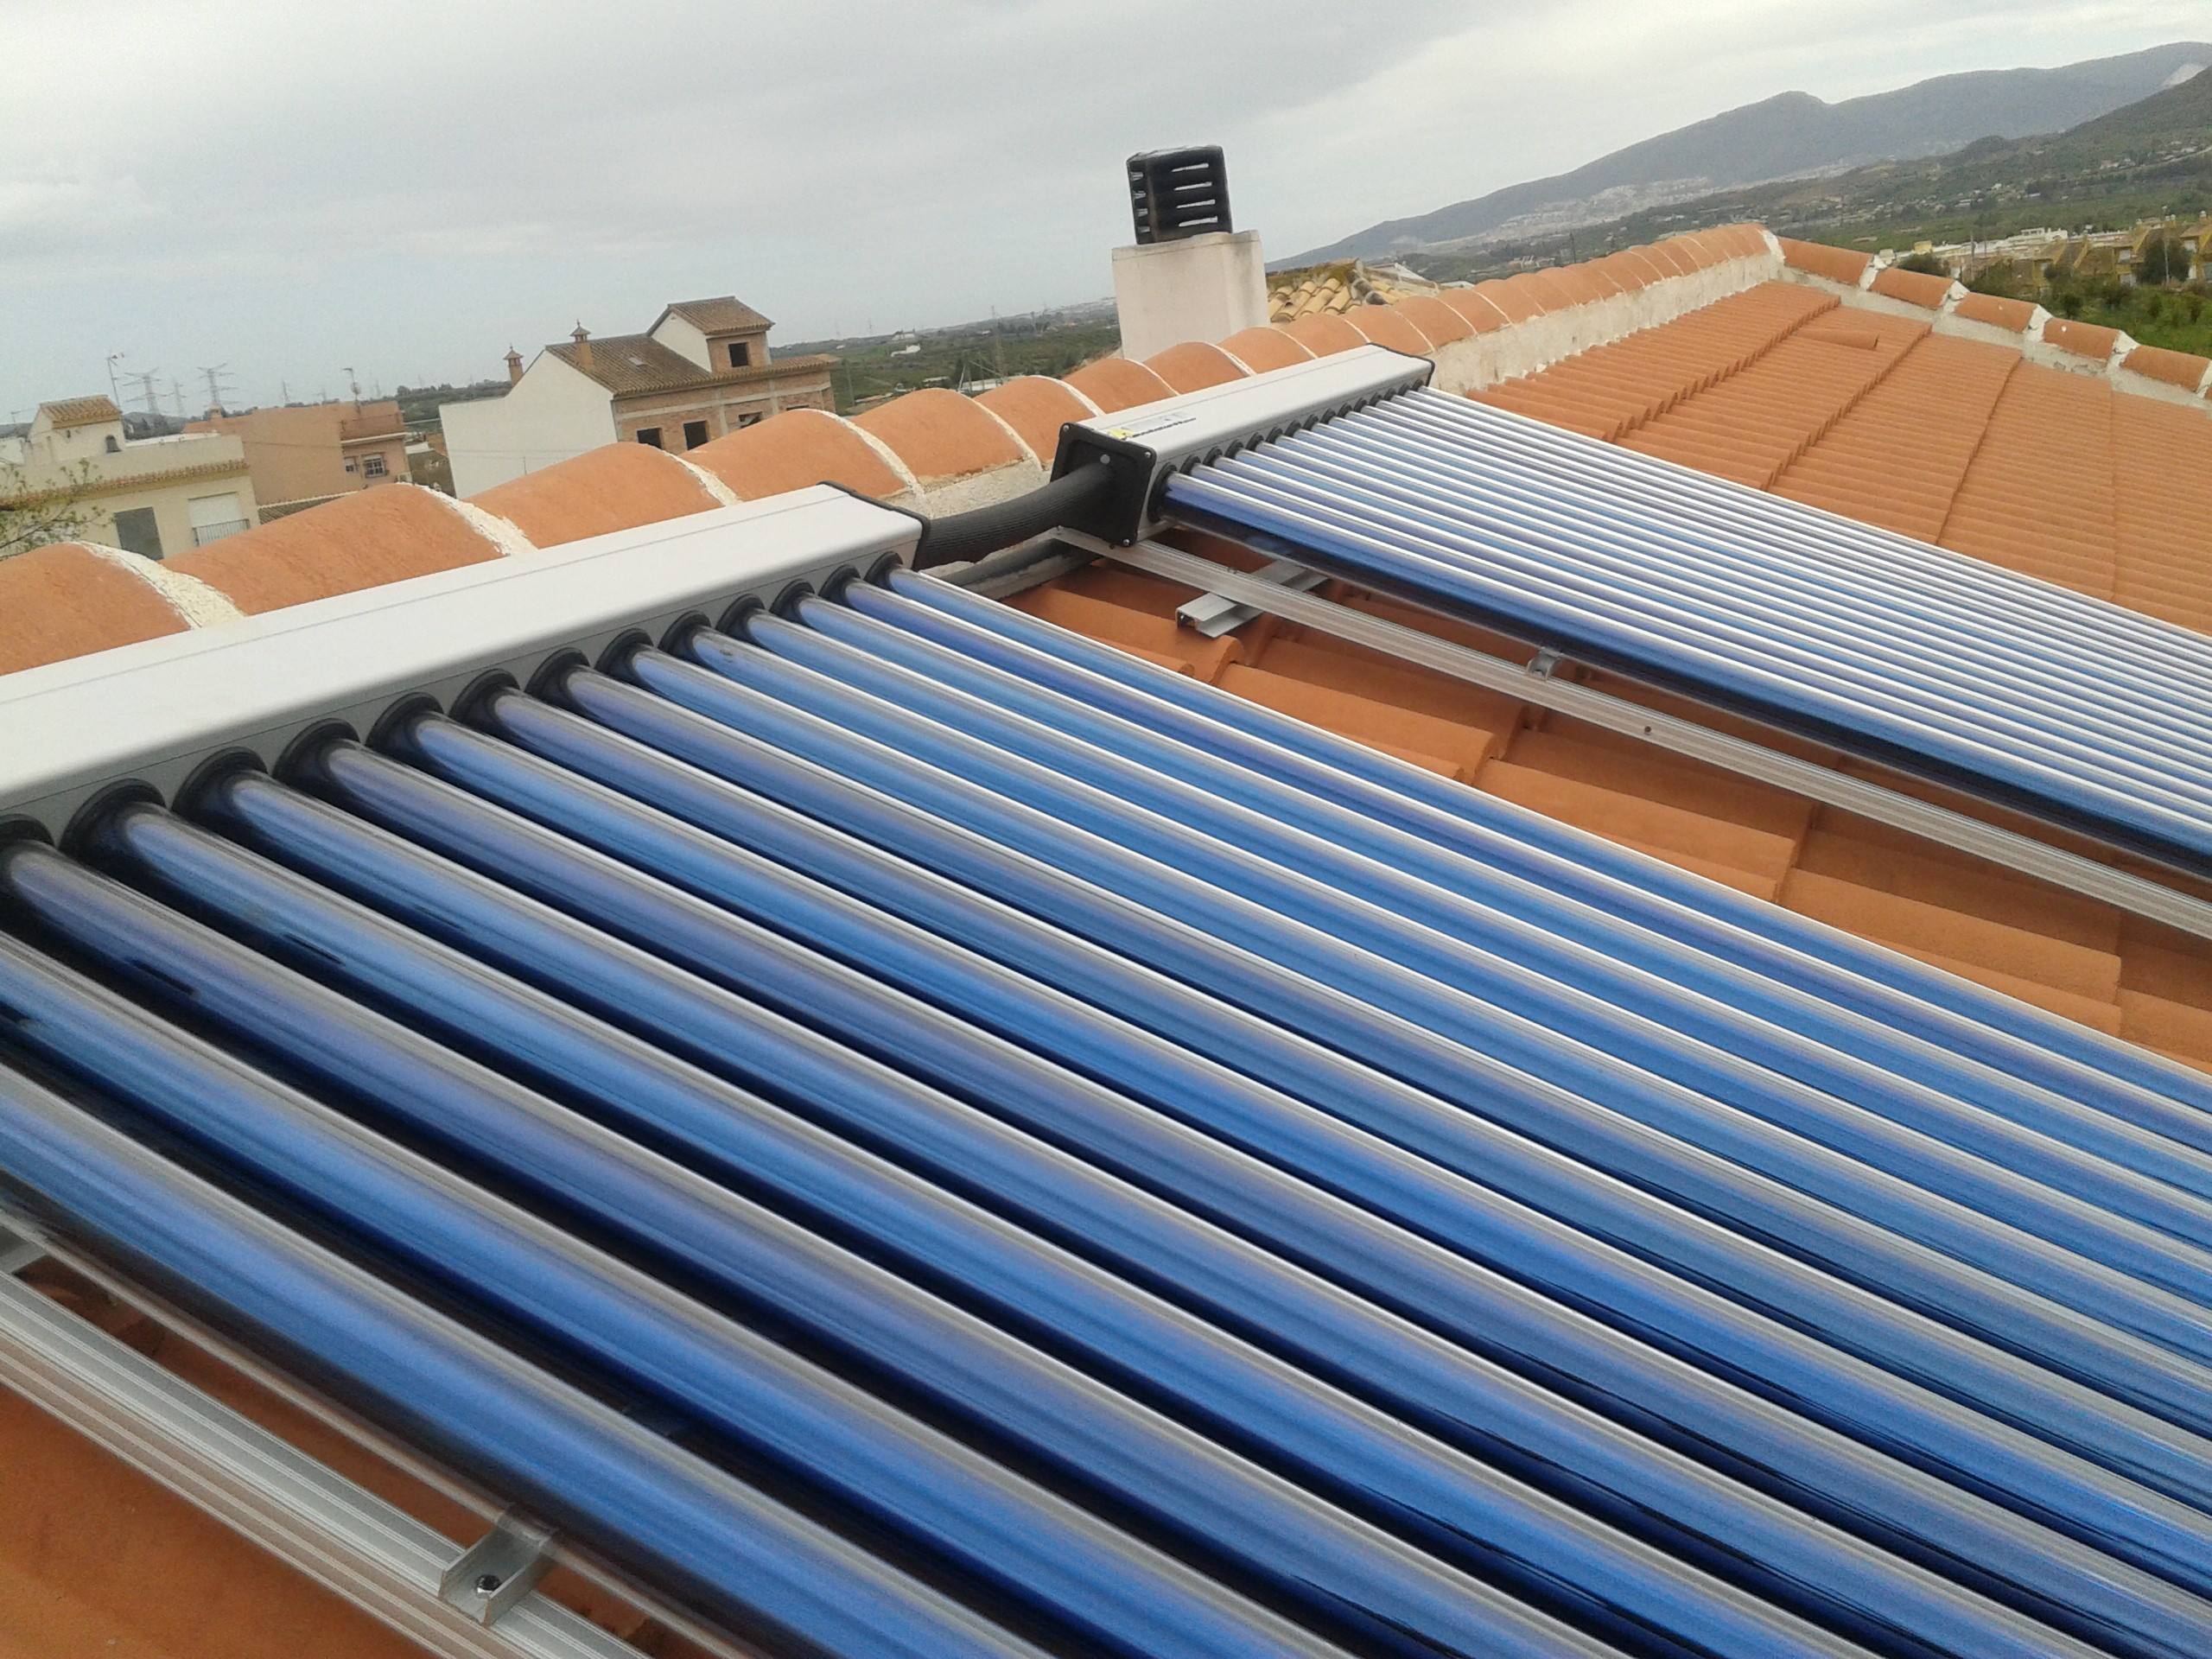 What kind of solar thermal panel can we choose?